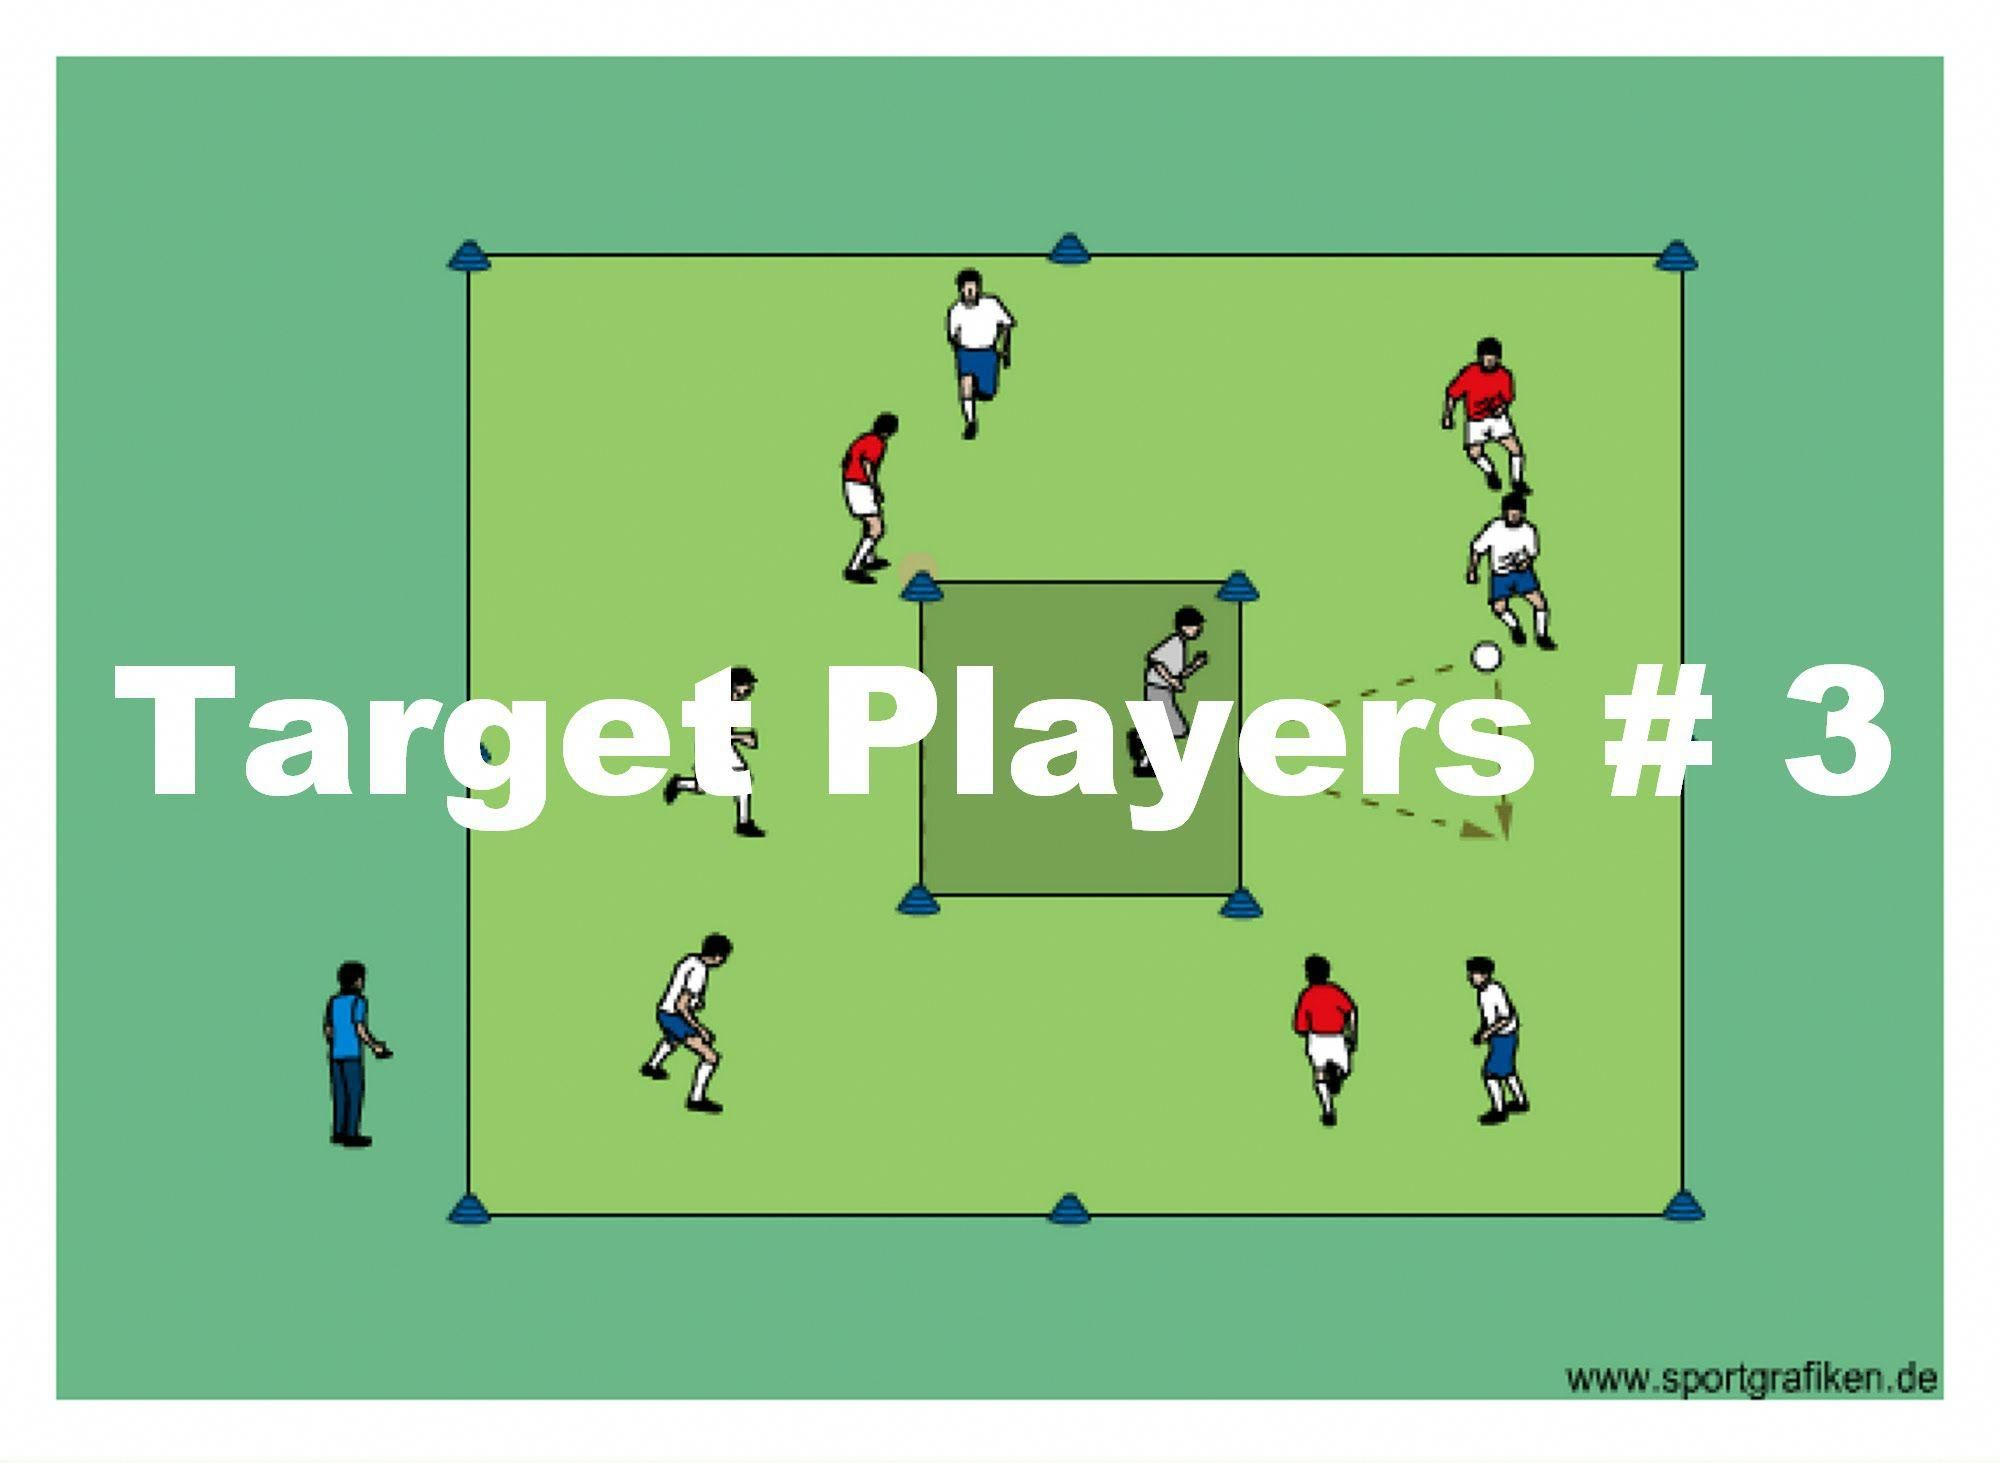 Discover our dynamic soccer training program with a great